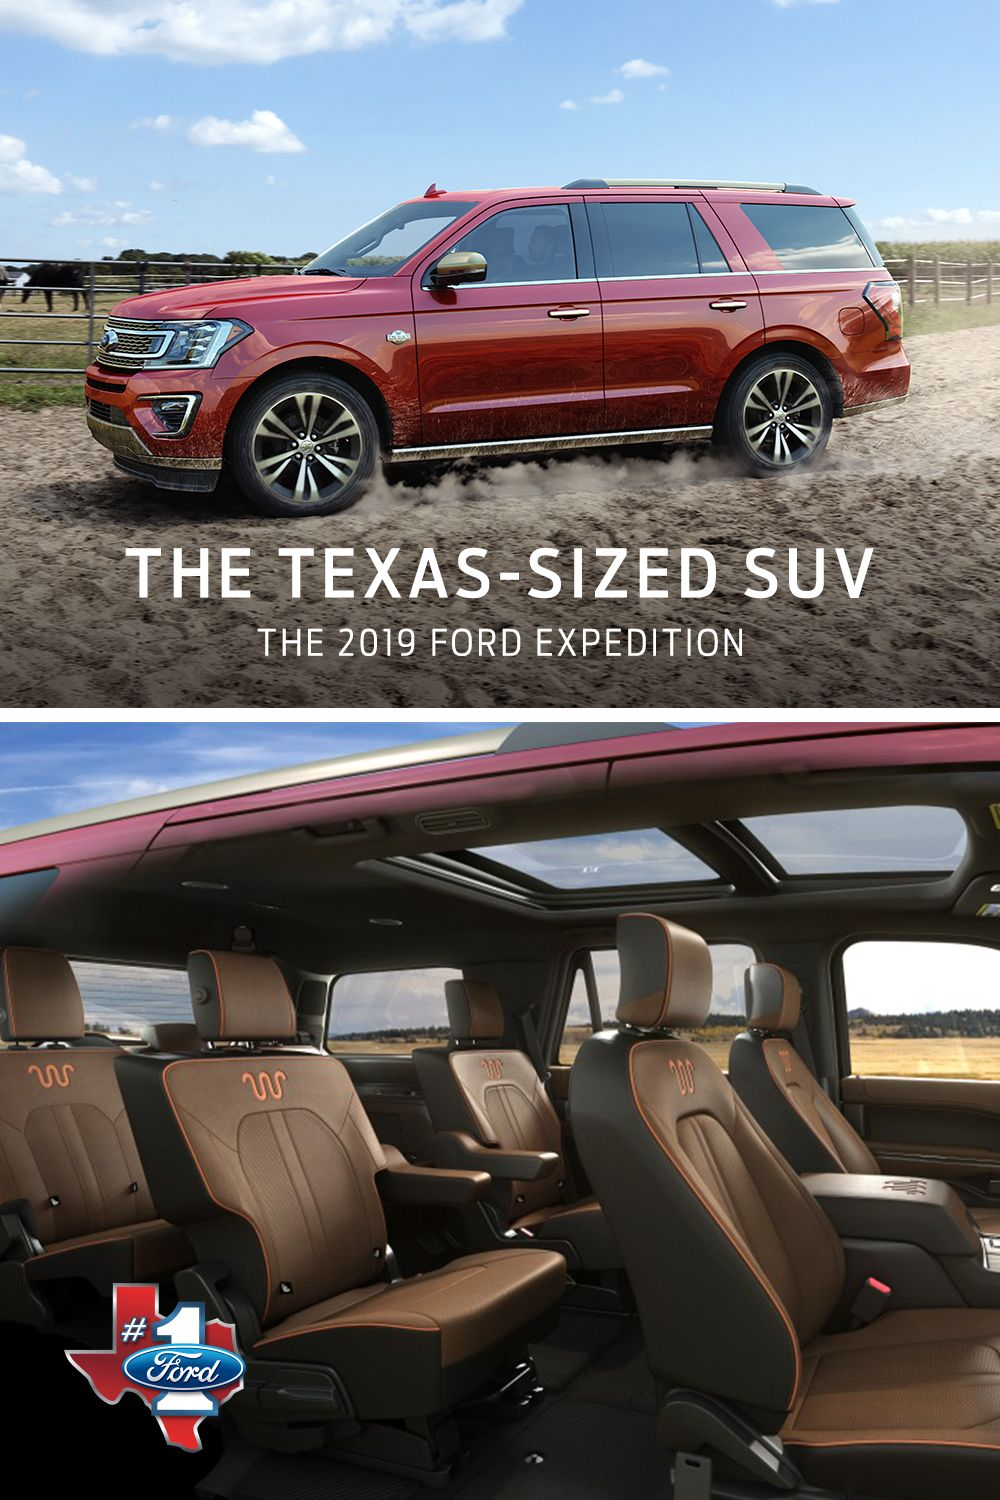 Pin By Bb With The Blades On Cars In 2020 Ford Expedition 2019